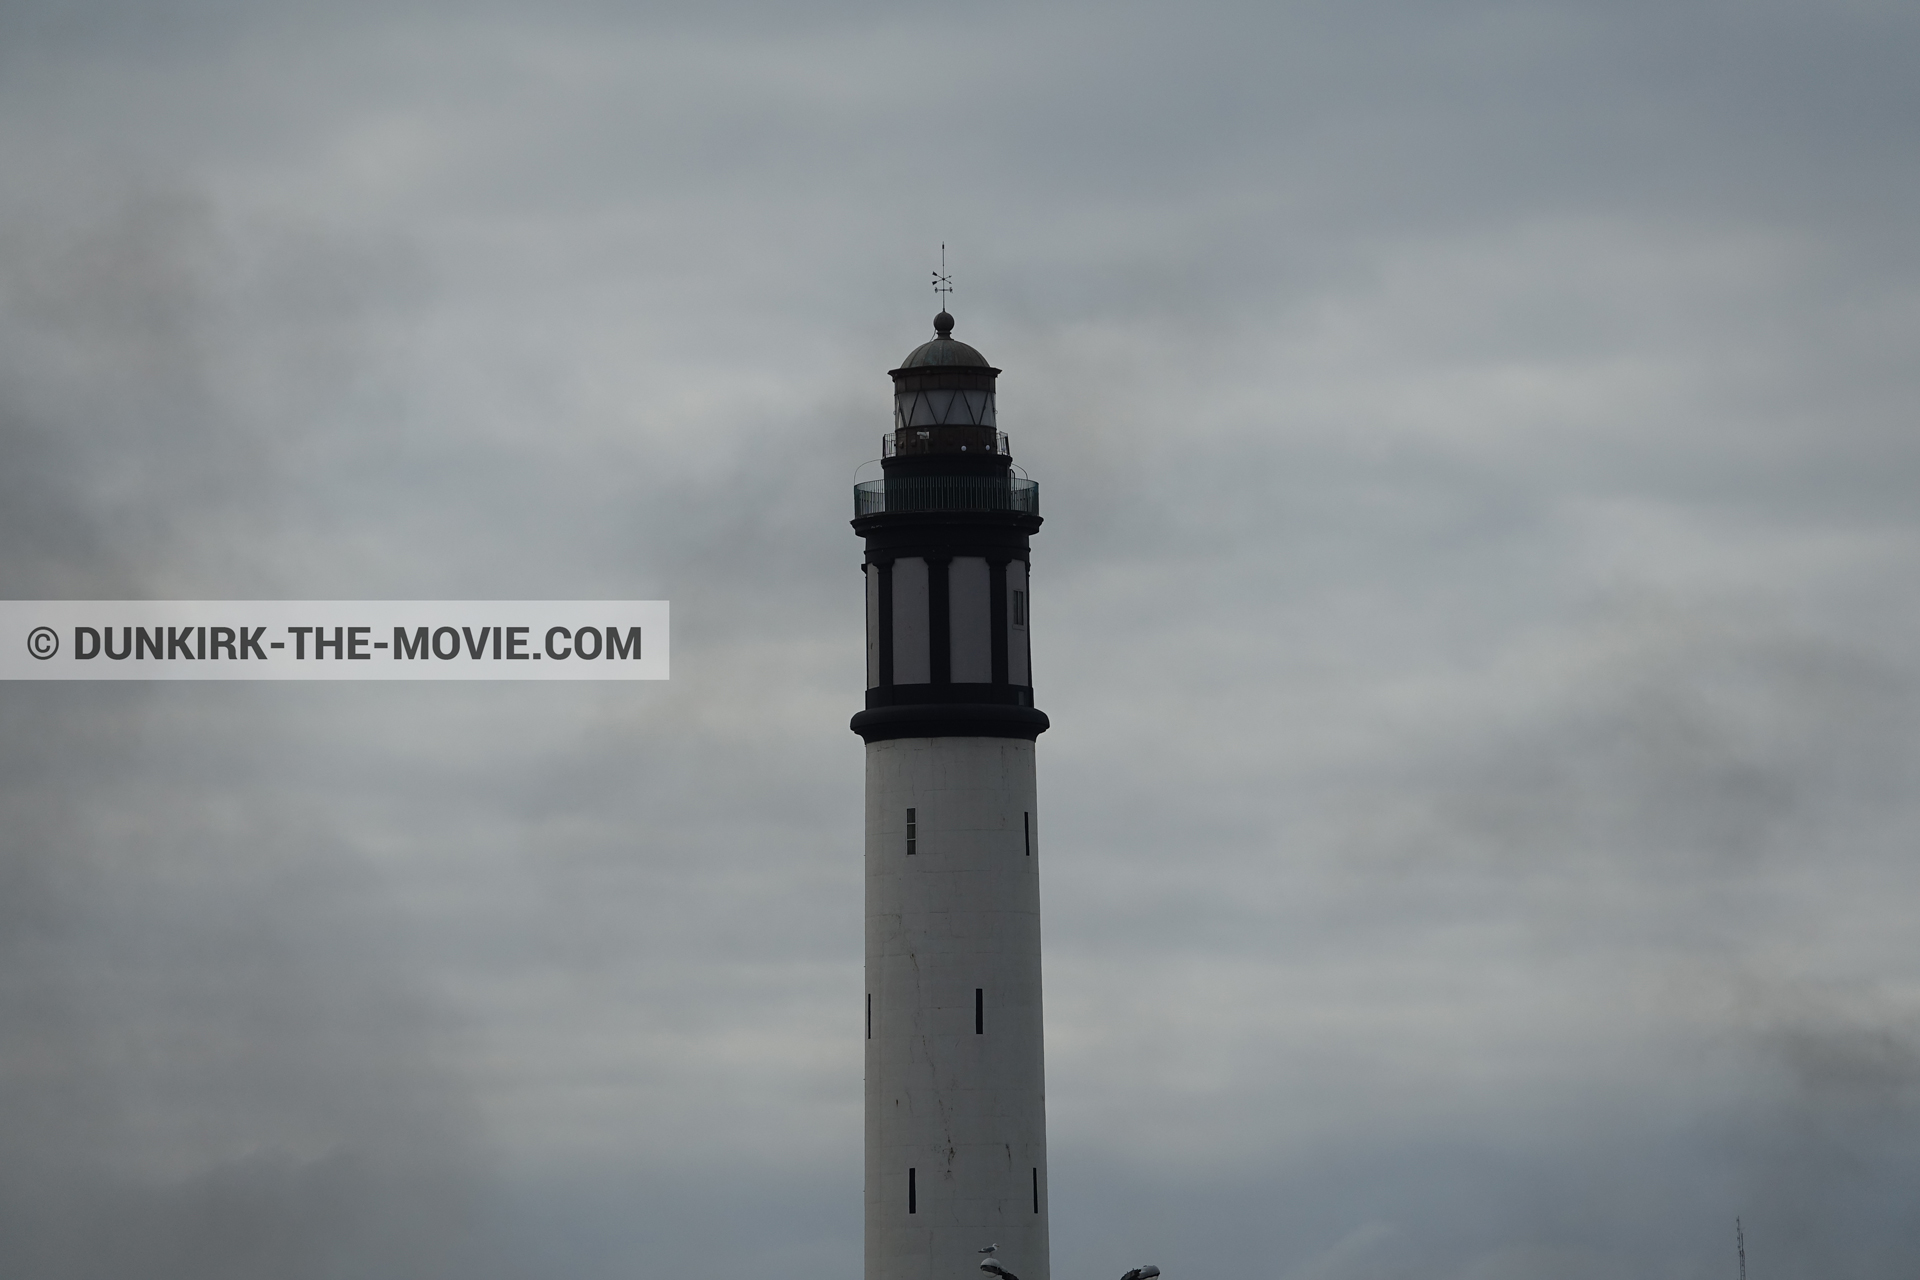 Picture with cloudy sky, Dunkirk lighthouse,  from behind the scene of the Dunkirk movie by Nolan